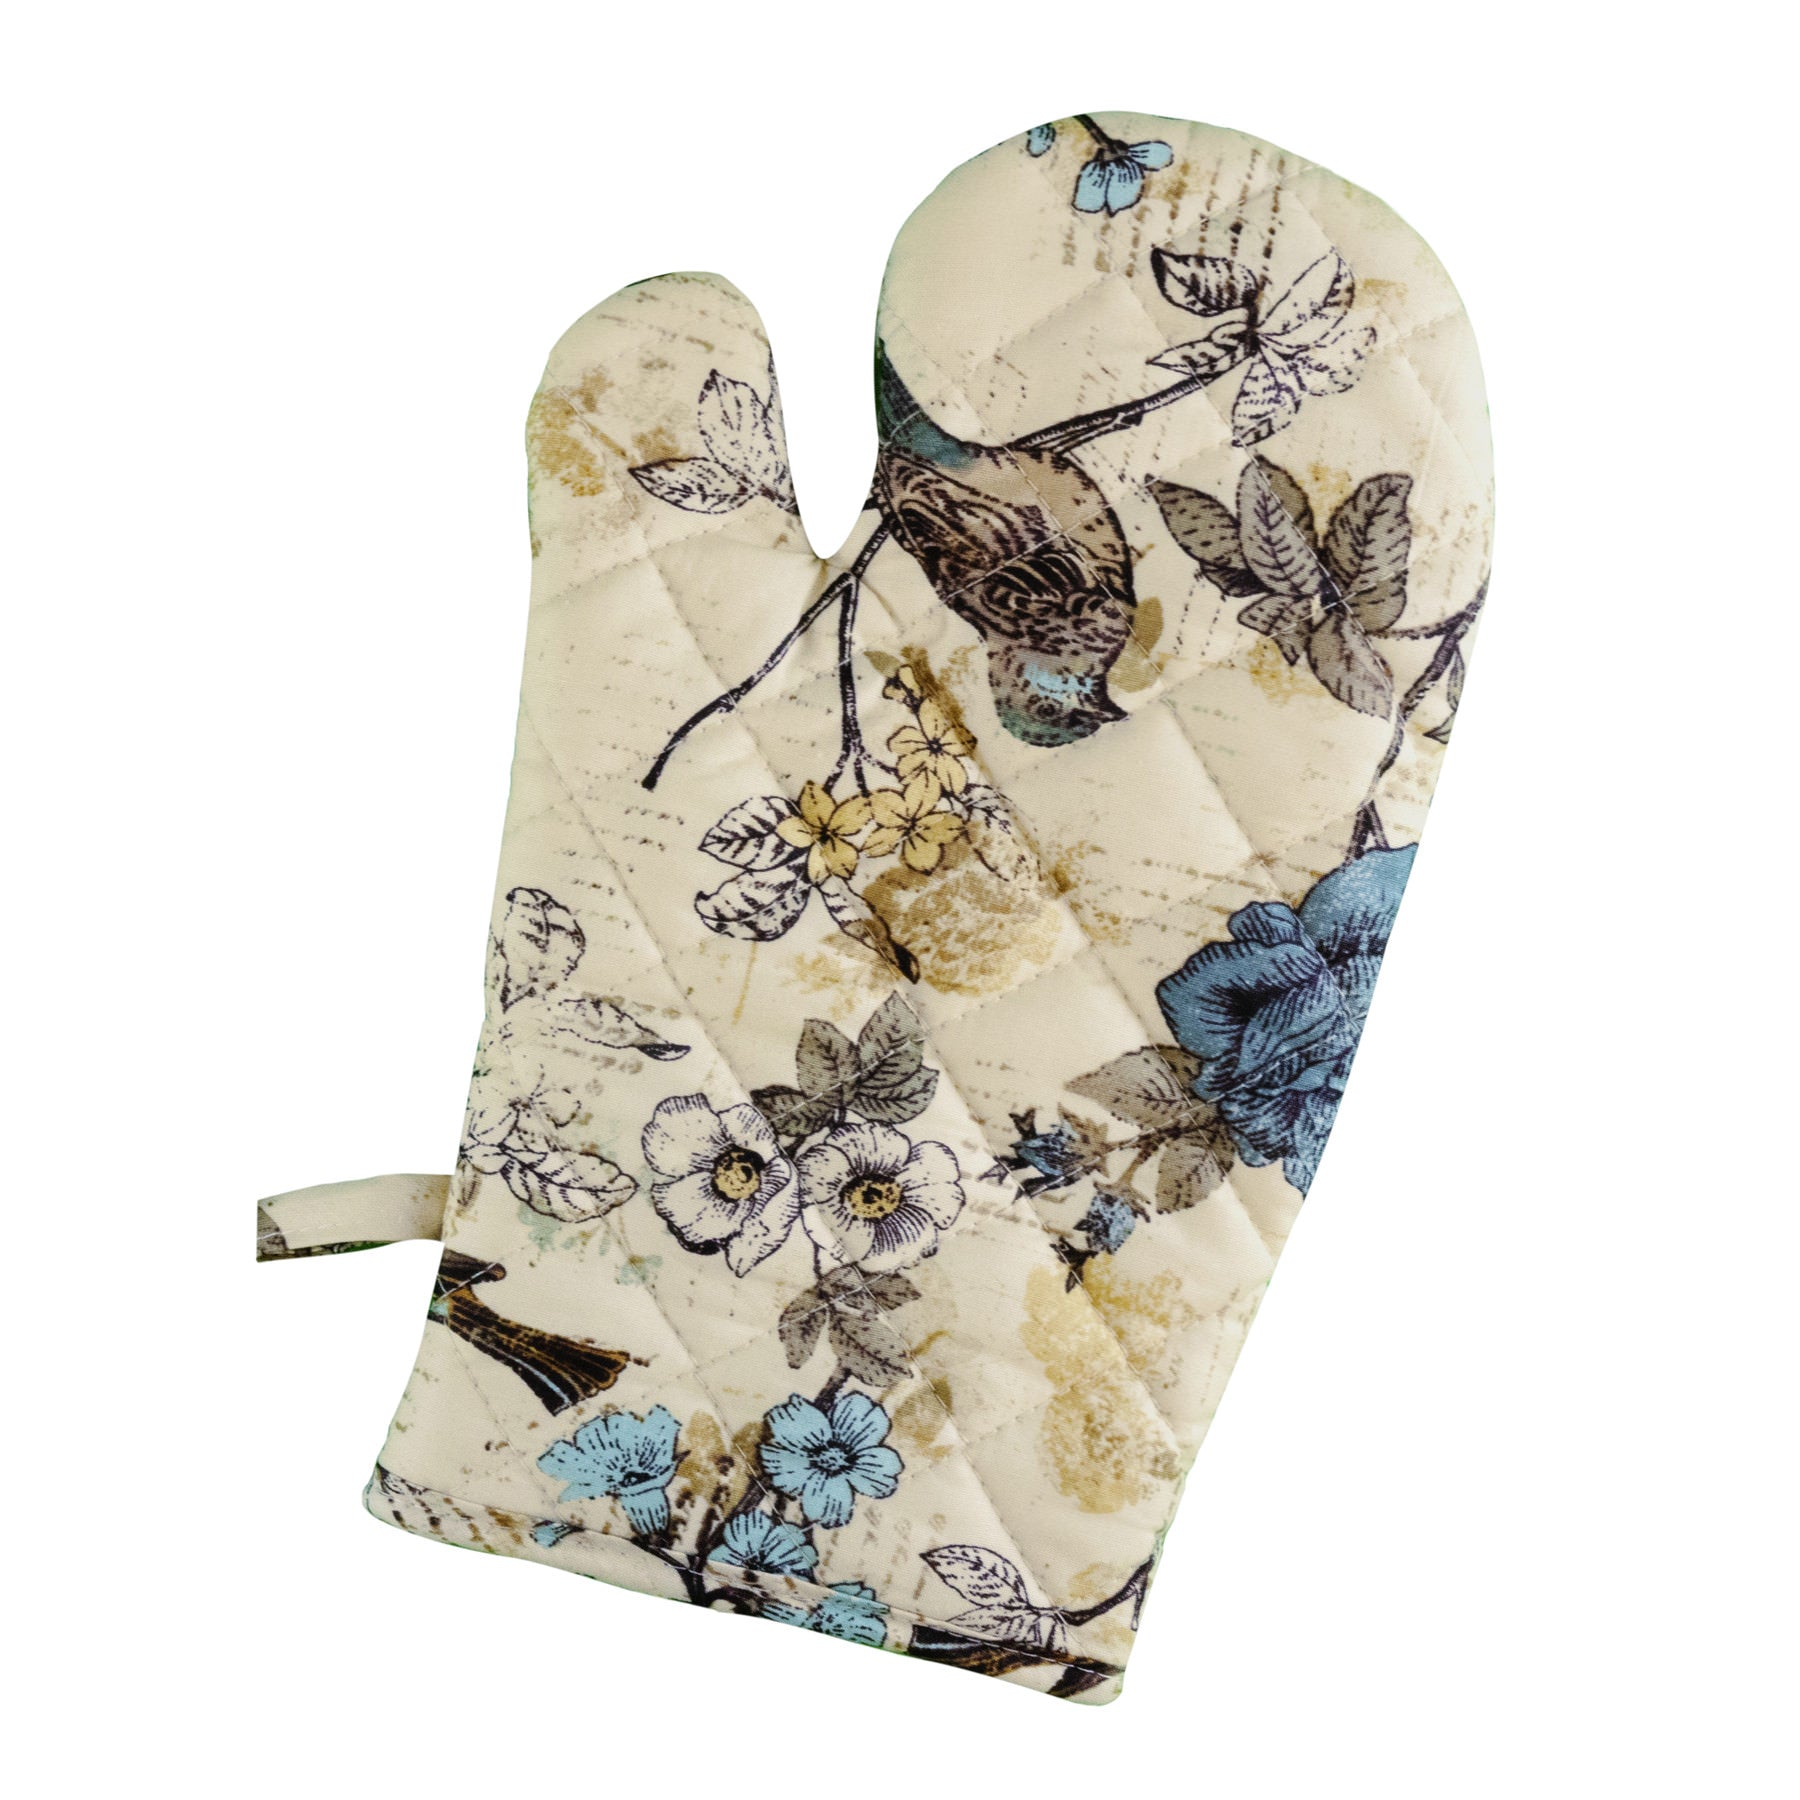 Stitch & Sparkle OVEN MITT 1 Piece Pack, Heat Resistant, 100% Cotton, Aviary, Words Bird Beige